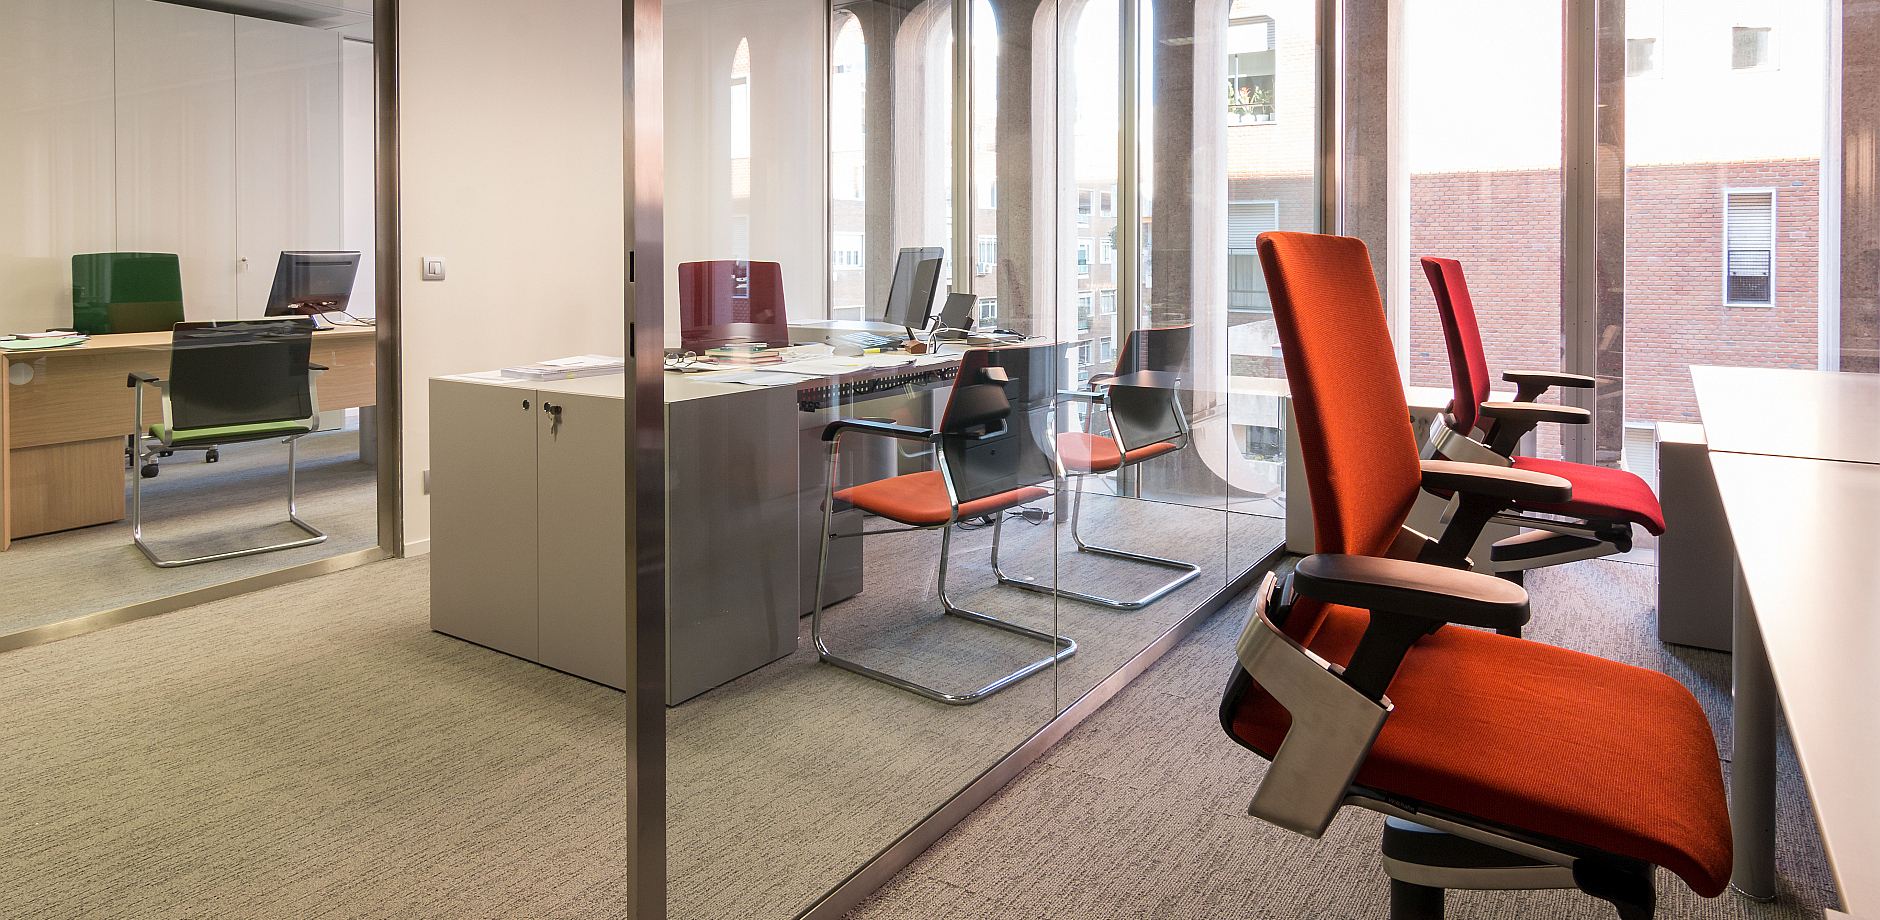 Real estate company, ON office chair, Sito cantilever chair, Wilkhahn